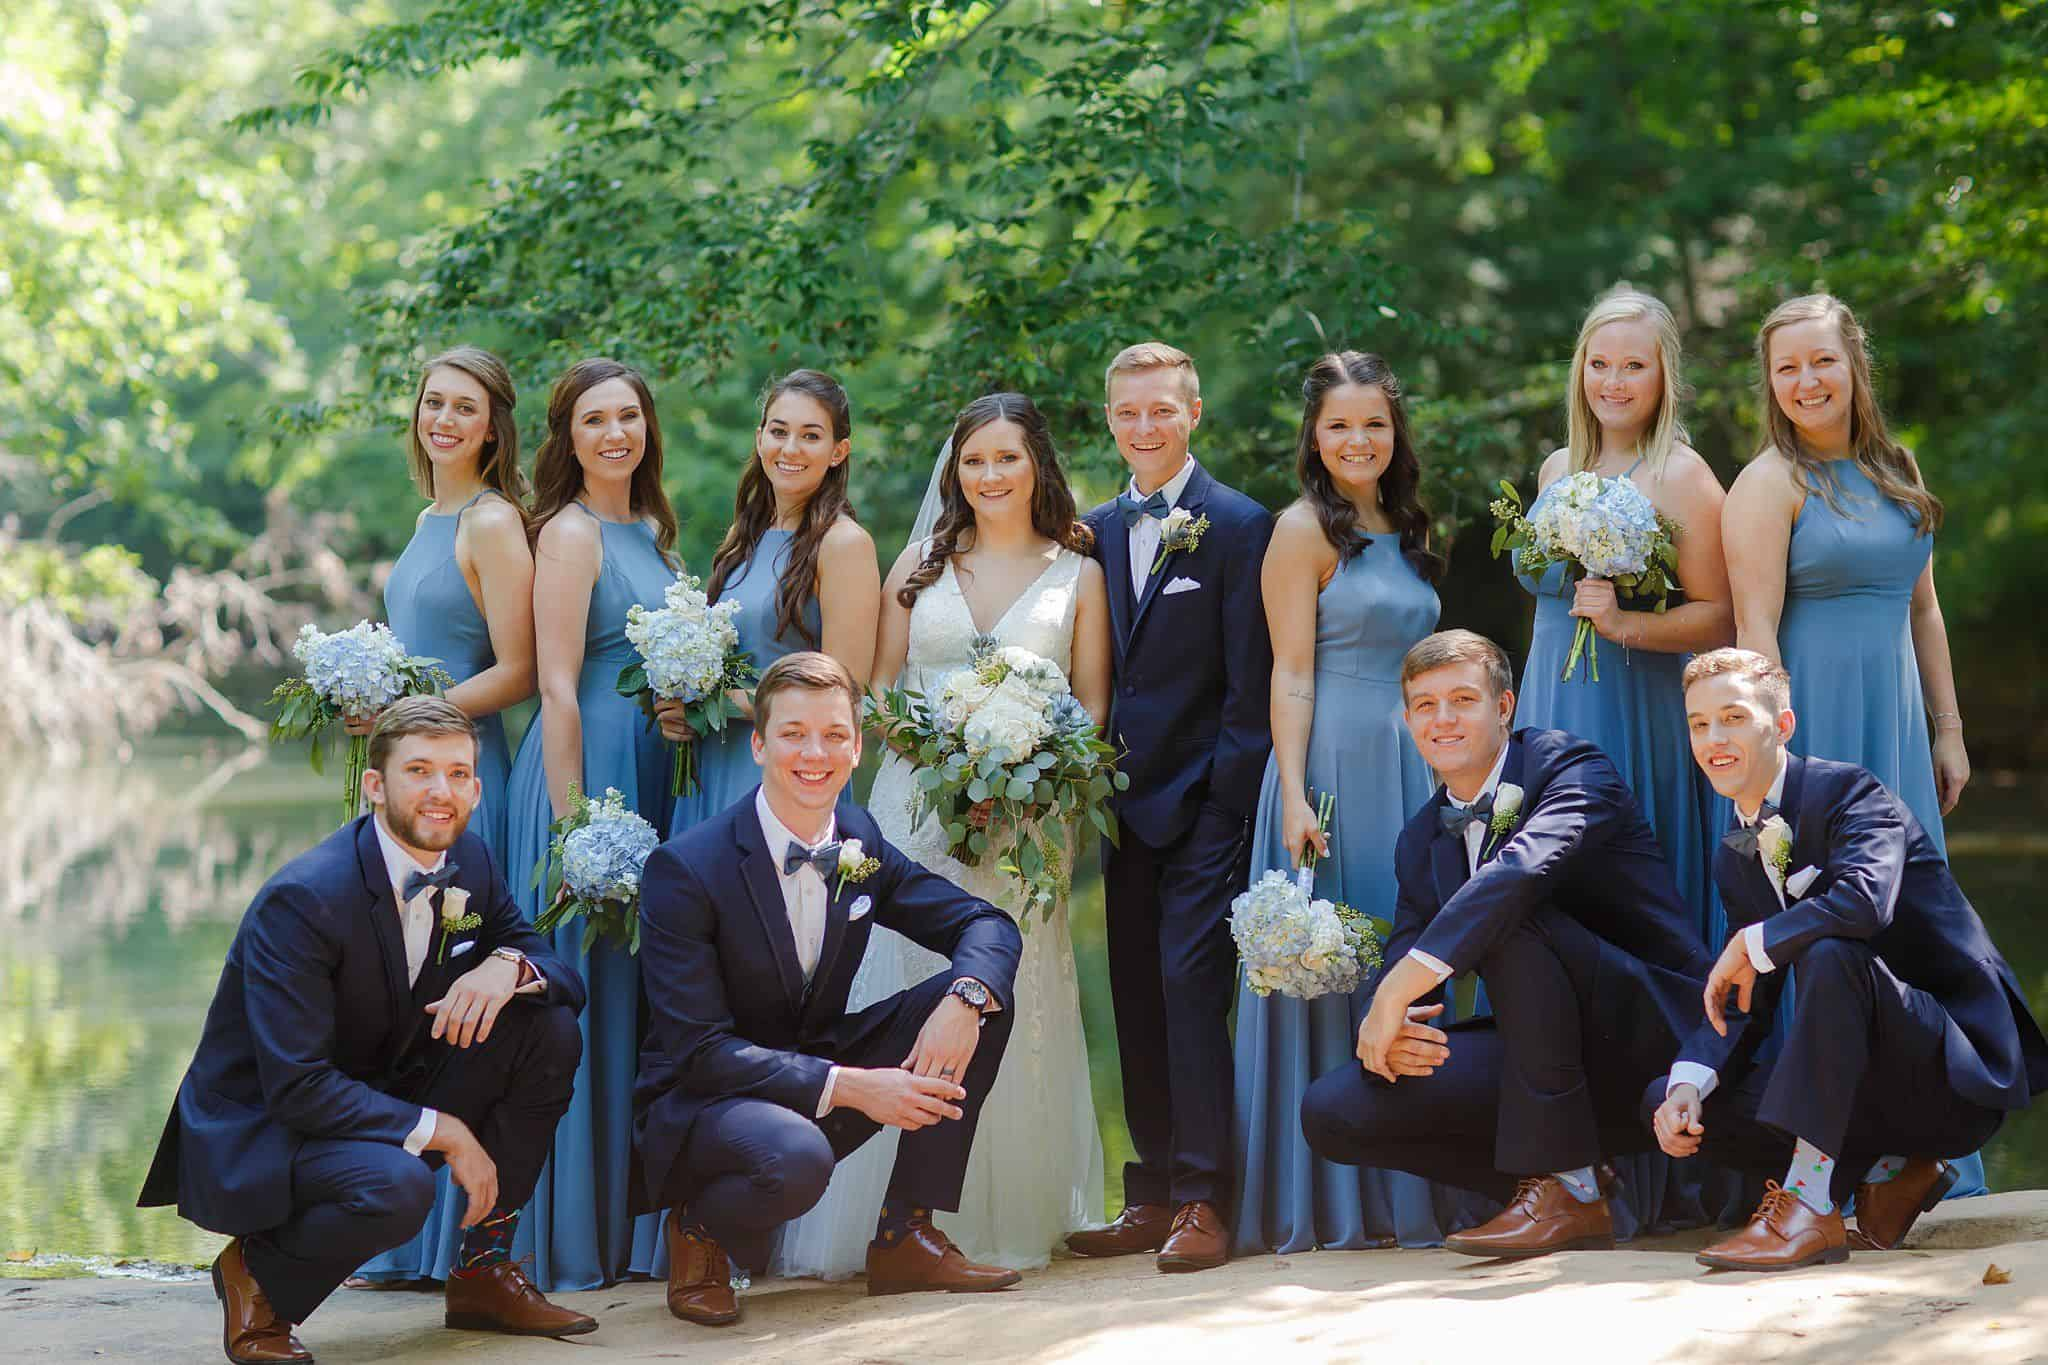 Bridal Party posing outdoors on the river with bride and groom